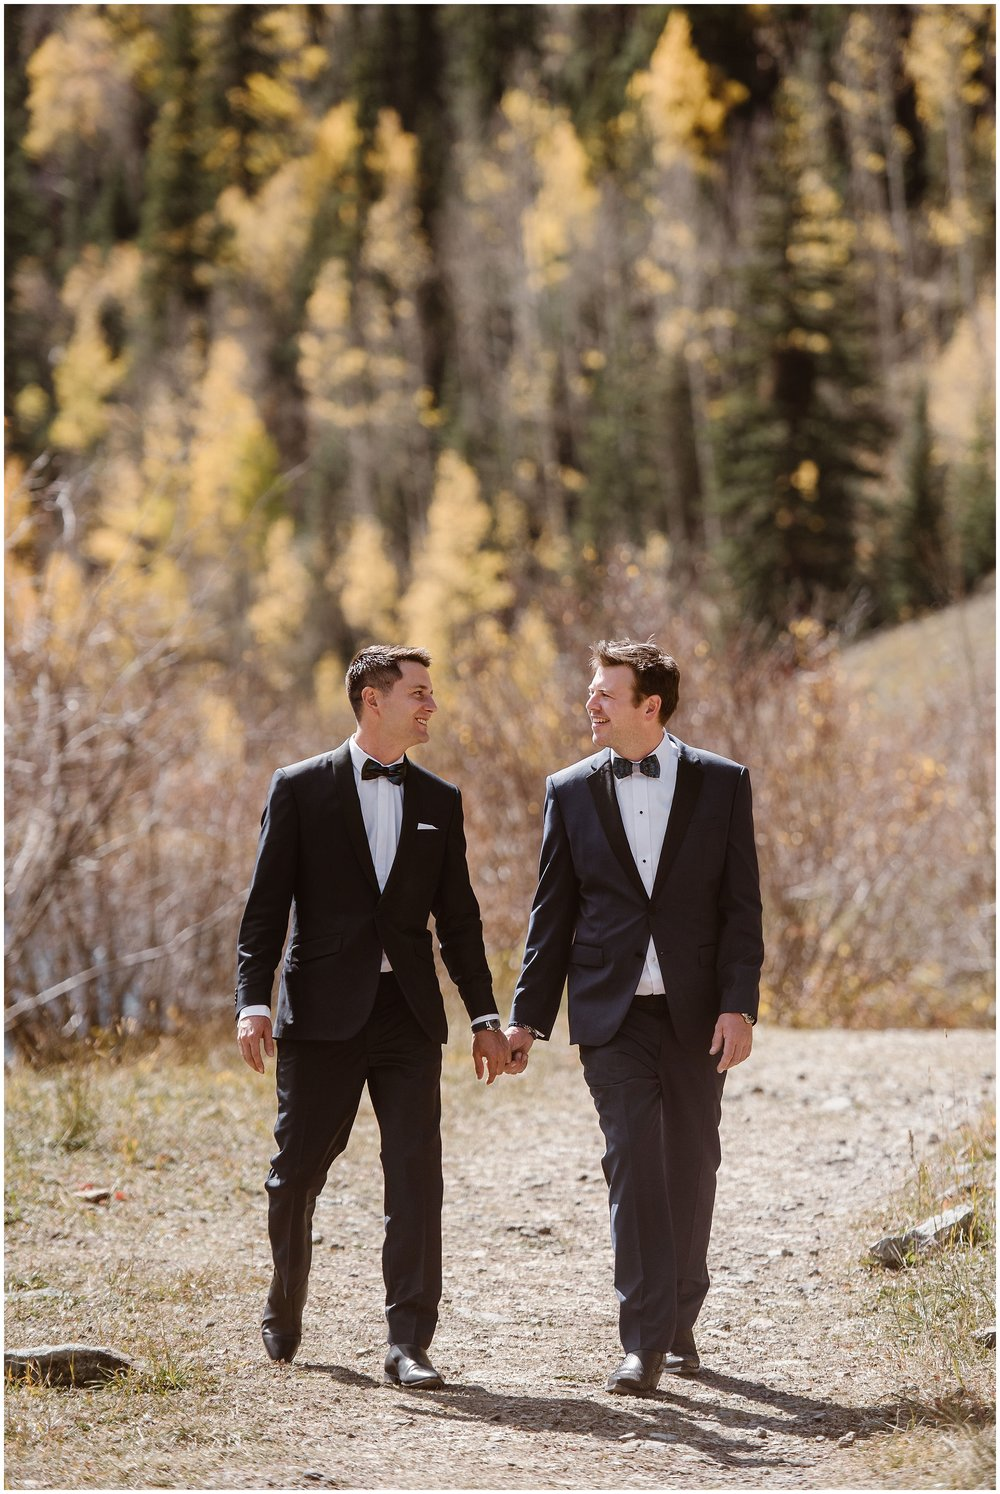 Brian and Ernie take hands as they walk away from a gorgeous, vivid aspen grove toward their elopement ceremony. As part of ther small, simple wedding, Brian and Ernie chose to incorporate one of their unique eloping ideas — renting side-by-sides to take them up the mountain to their destination elopement.